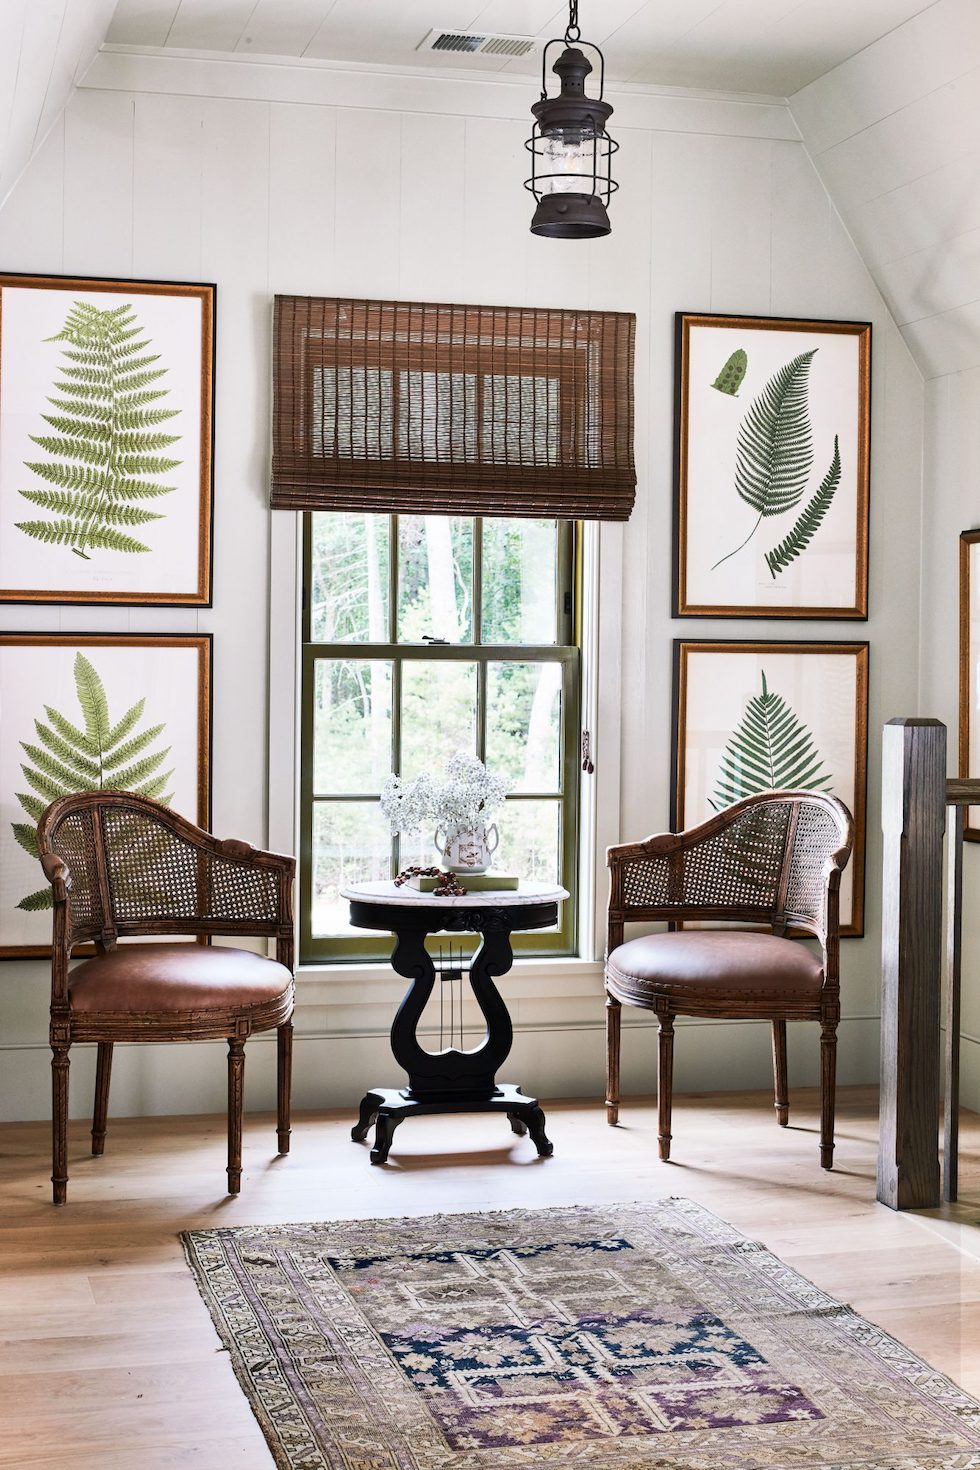 Tour the 2020 Southern Living Idea House